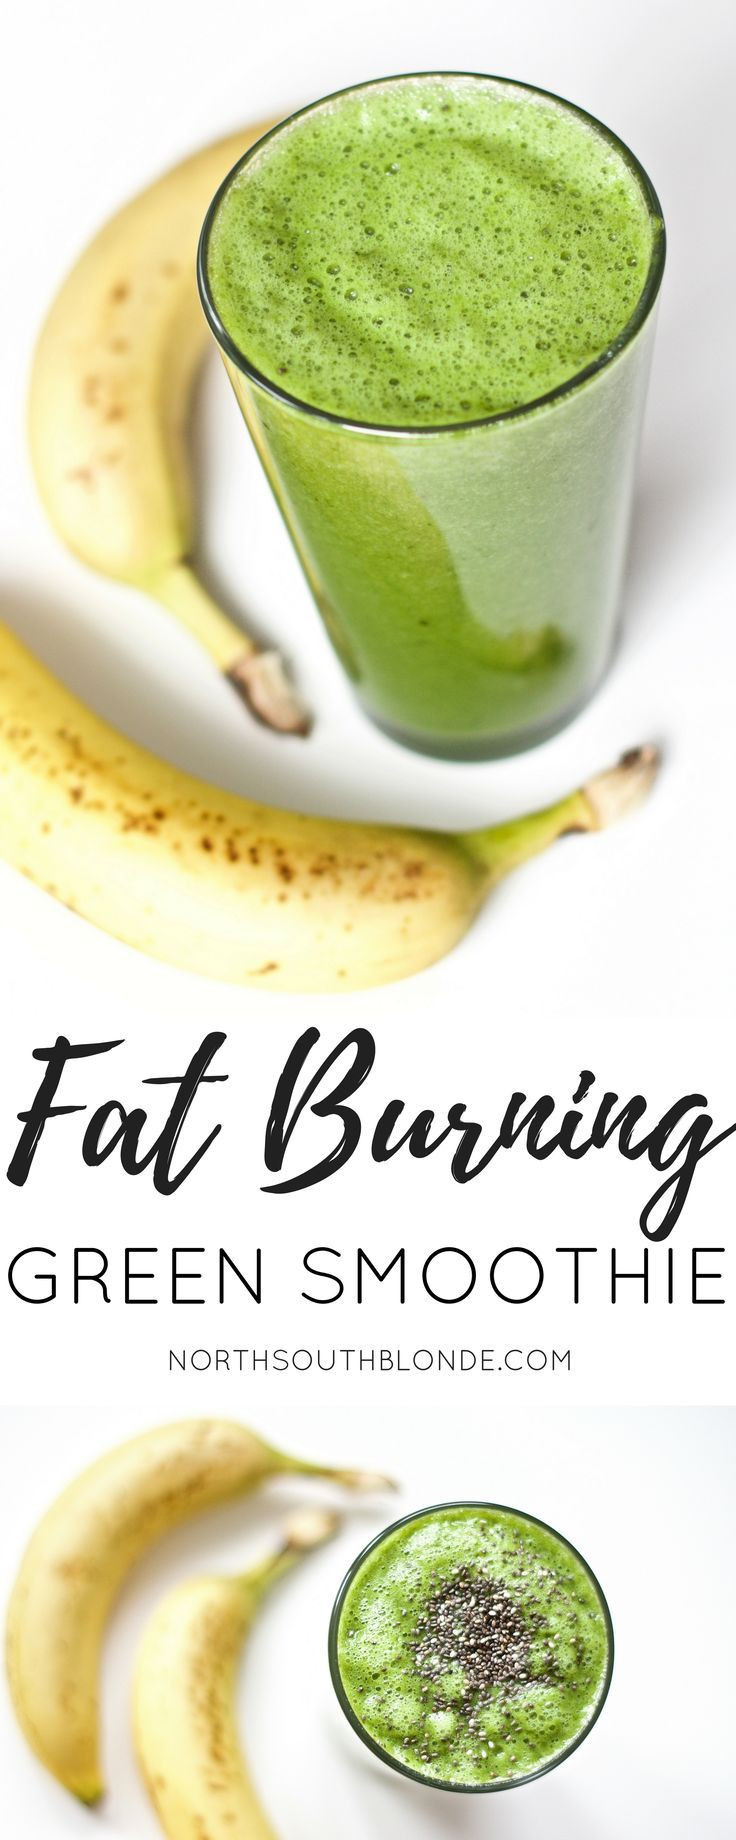 Free Healthy Smoothie Recipes For Weight Loss  Fat Burning Green Smoothie Post Workout Gluten Free